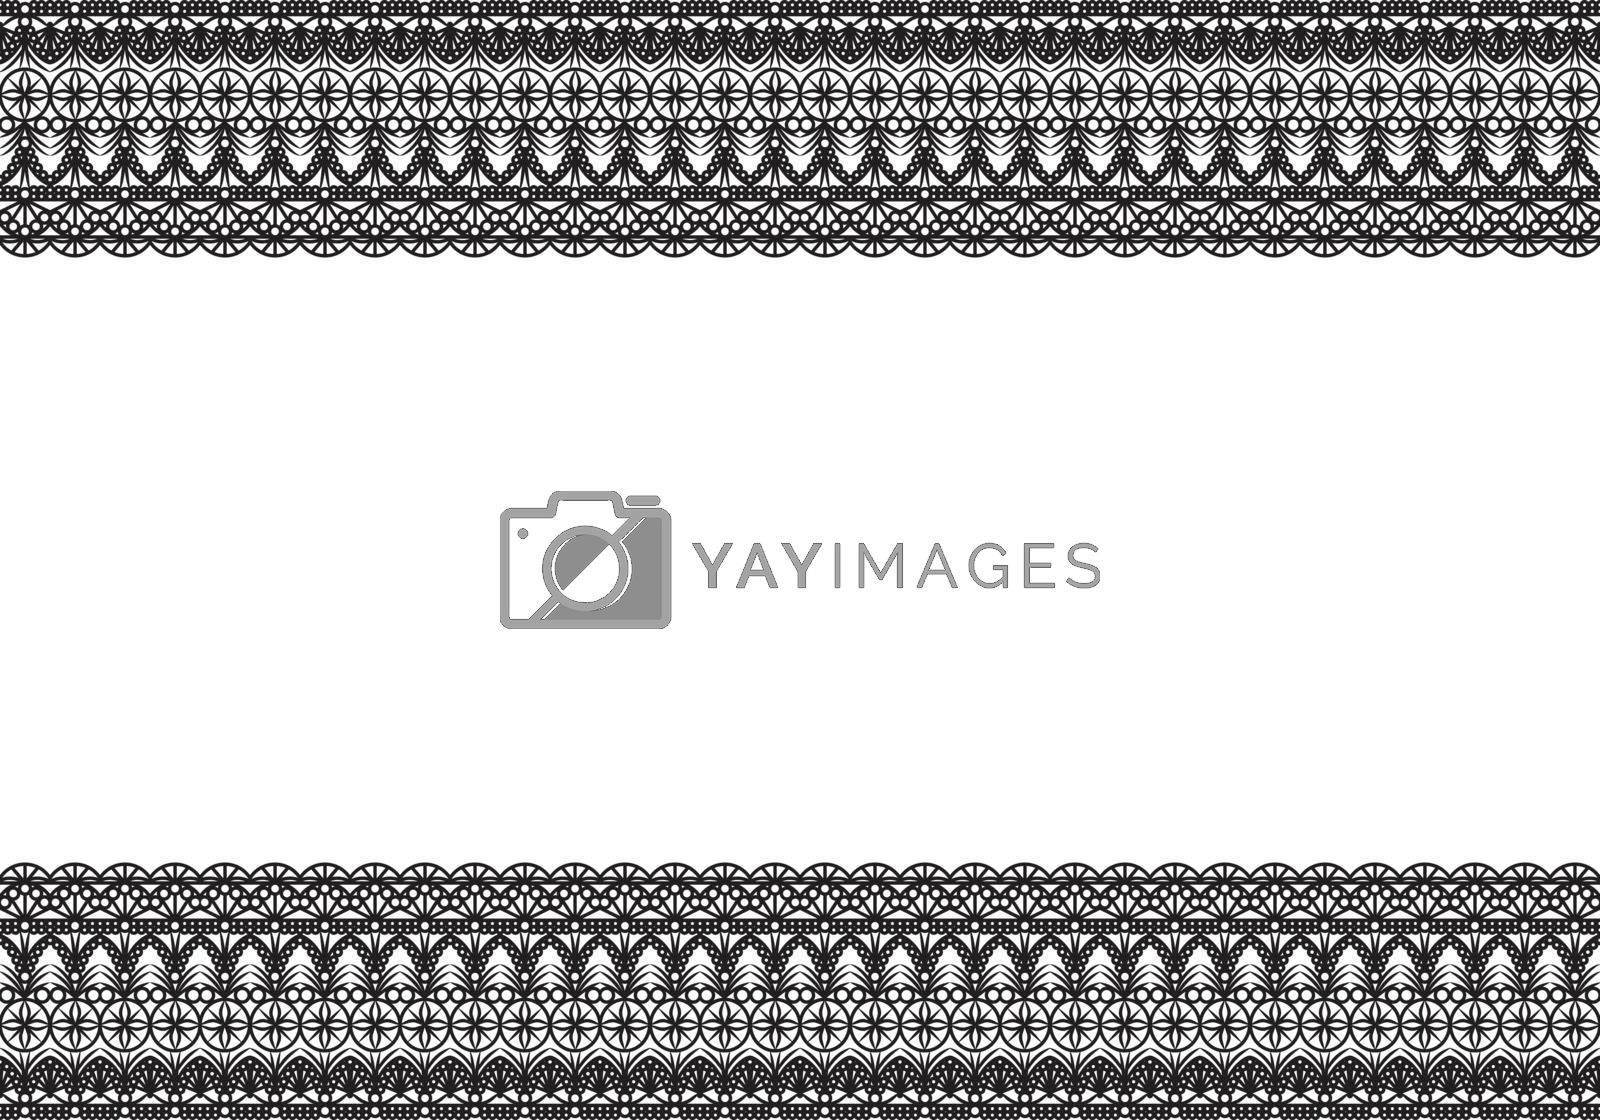 Black seamless lace pattern on white isolated background. Elegant frame decoration design. Empty space for the copy.